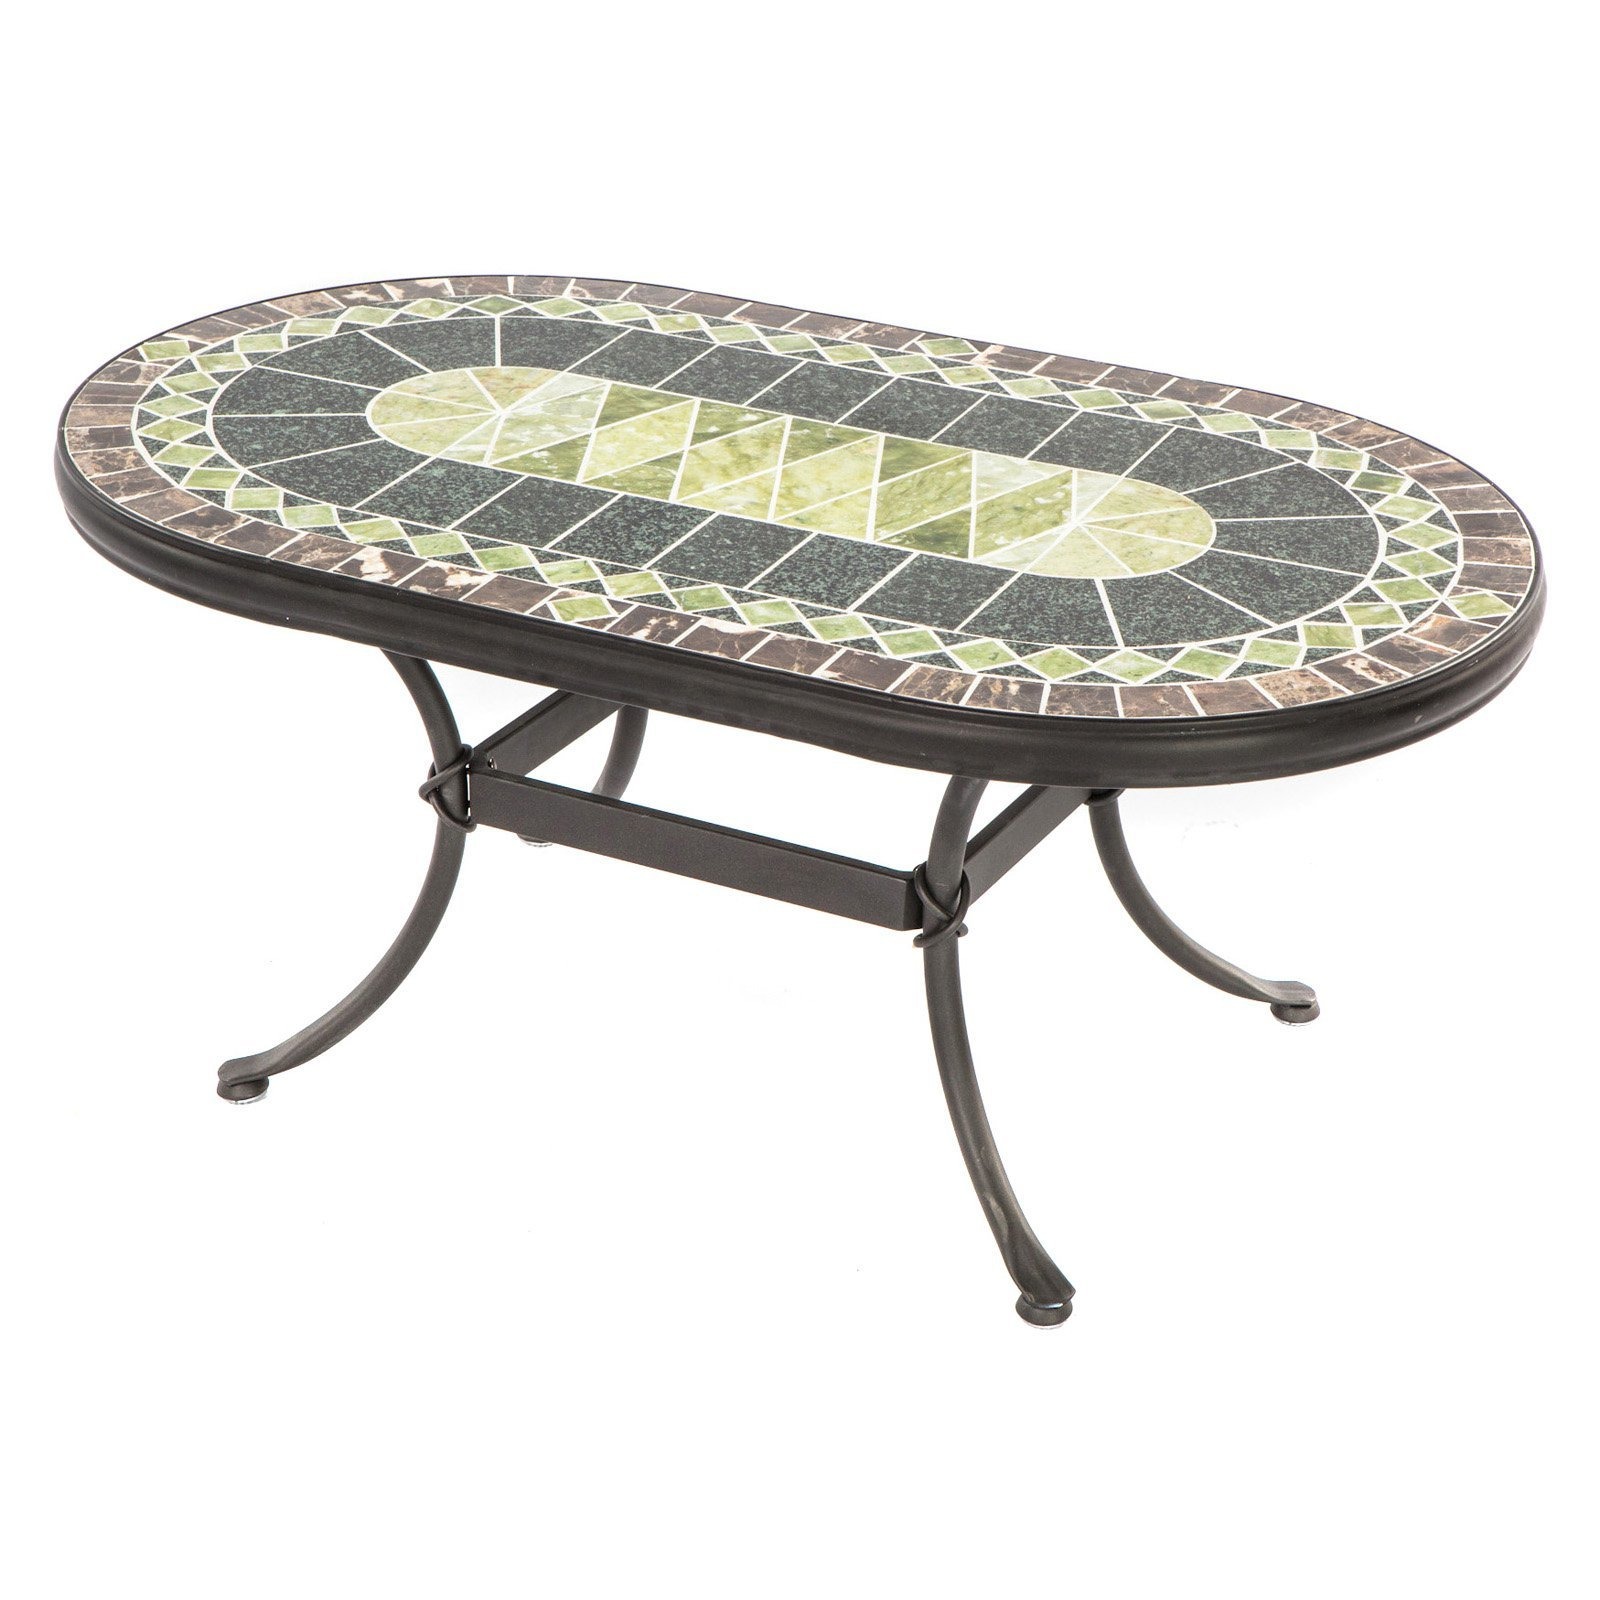 nice patio accent table lawn garden fascinating small round wonderful amazing mosaic outdoor coffee basilica home design inspiration tables safavieh gold end pier one papasan